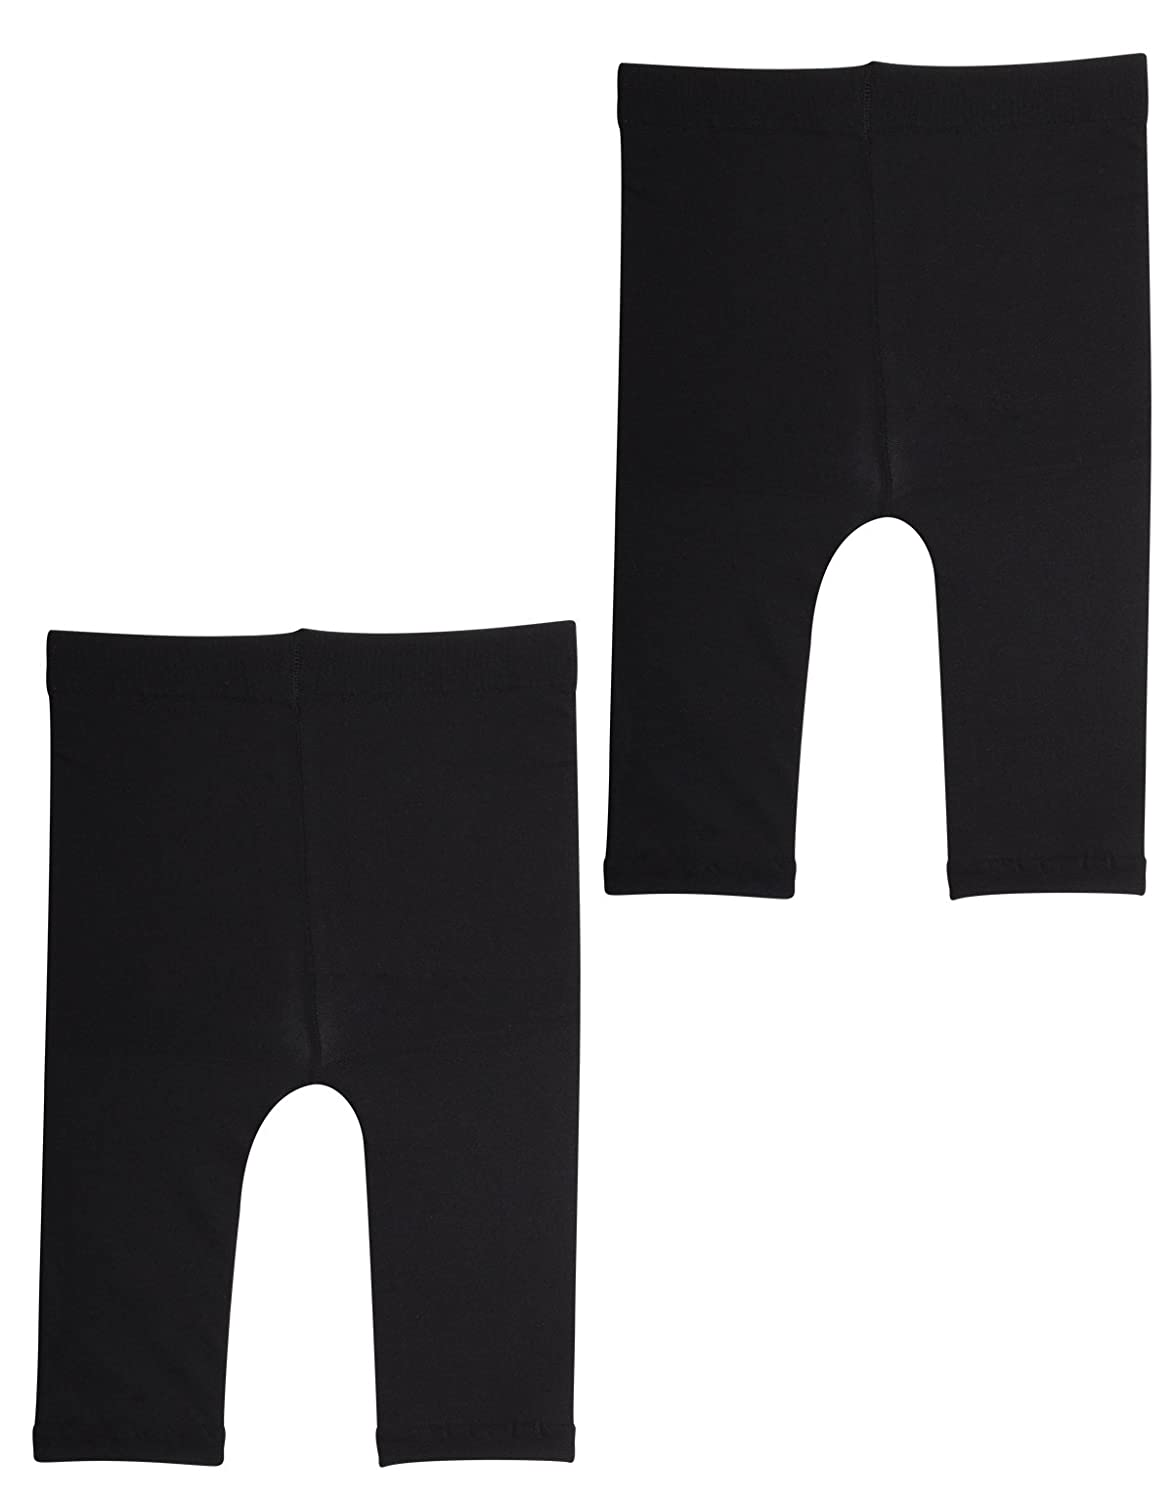 CALZITALY 2 Pairs SEMI Opaque Cropped Leggins Italian Hosiery | Black,White 50 DEN Baby Footless Thights